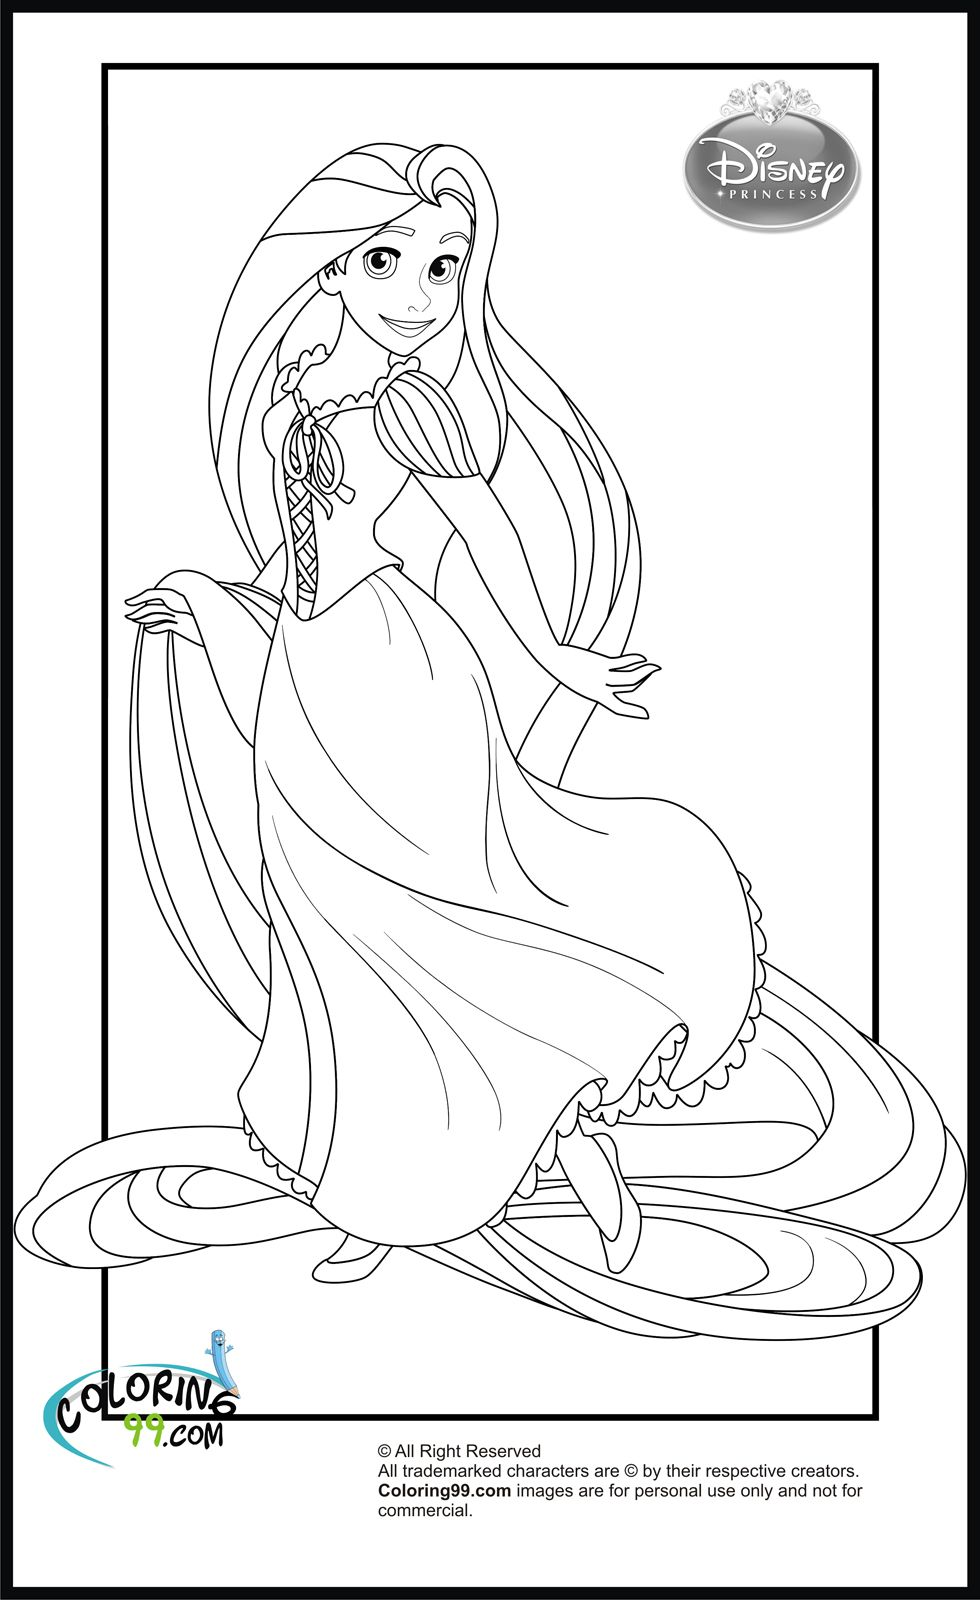 Generous Art Nouveau Coloring Book Tiny Strawberry Shortcake Coloring Book Solid Pattern Coloring Books Marvel Coloring Book Young Where To Buy Coloring Books ColouredToy Story Coloring Book Disney Princess Rapunzel Coloring Pages.jpg 980×1,600 Pixels ..